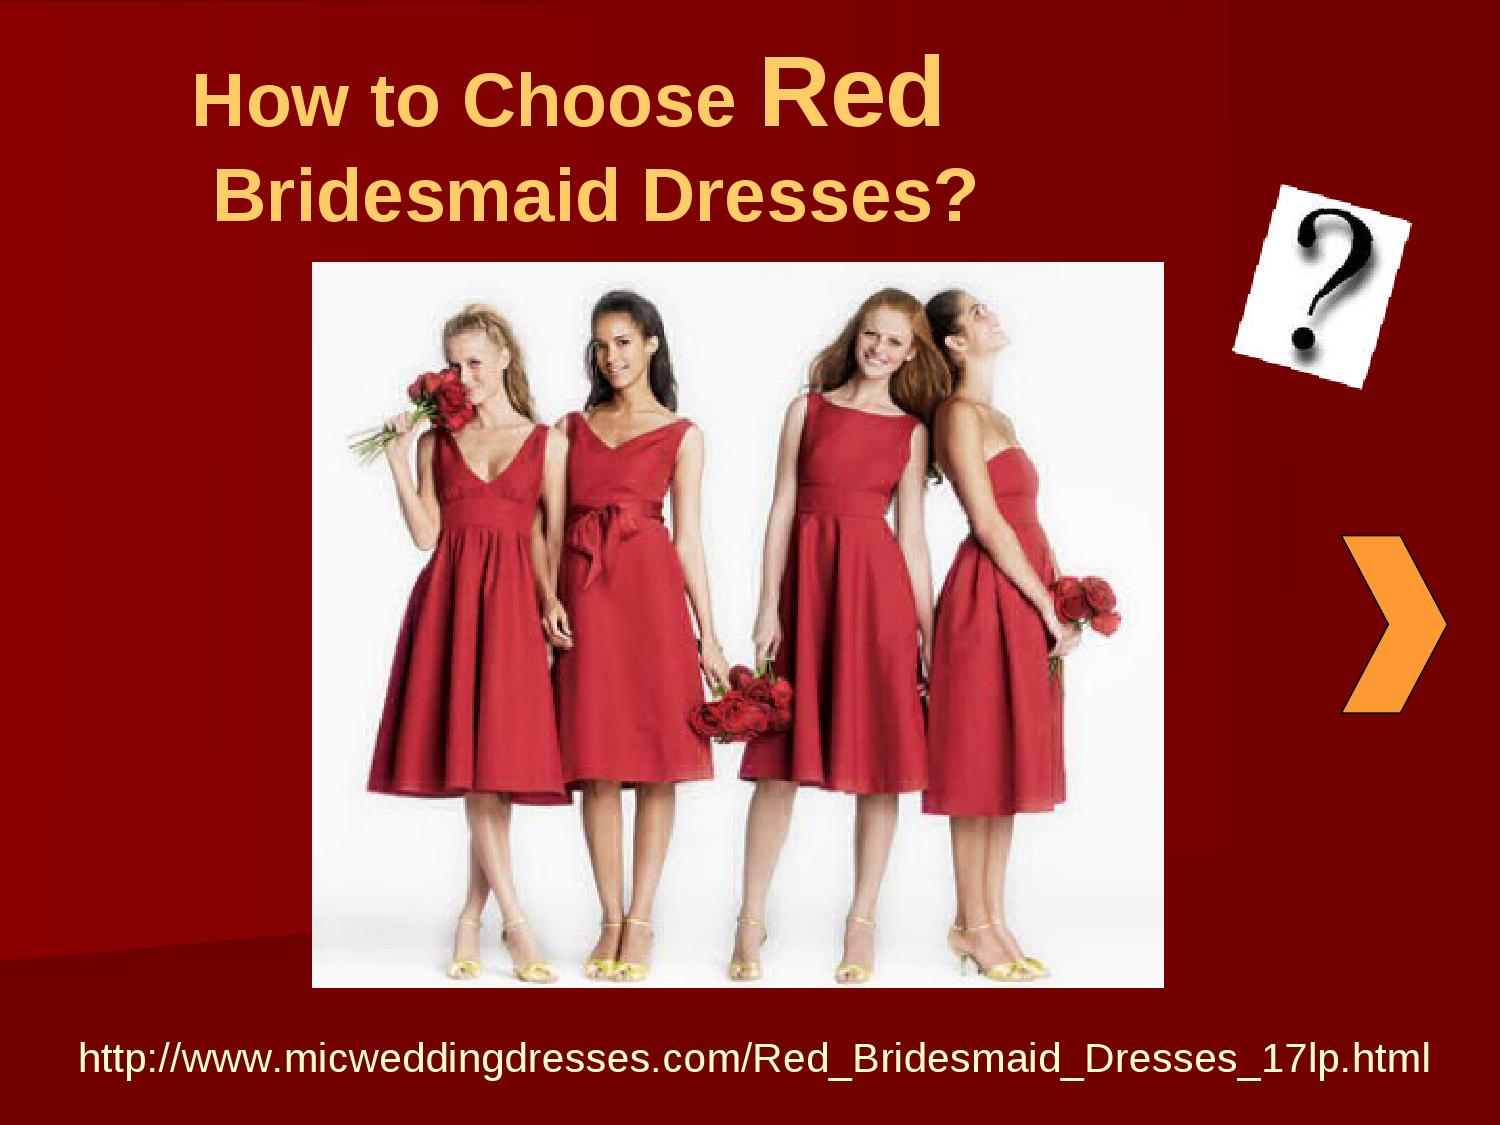 How to Choose Red Bridesmaid Dresses by Mic Weddingdresses ...